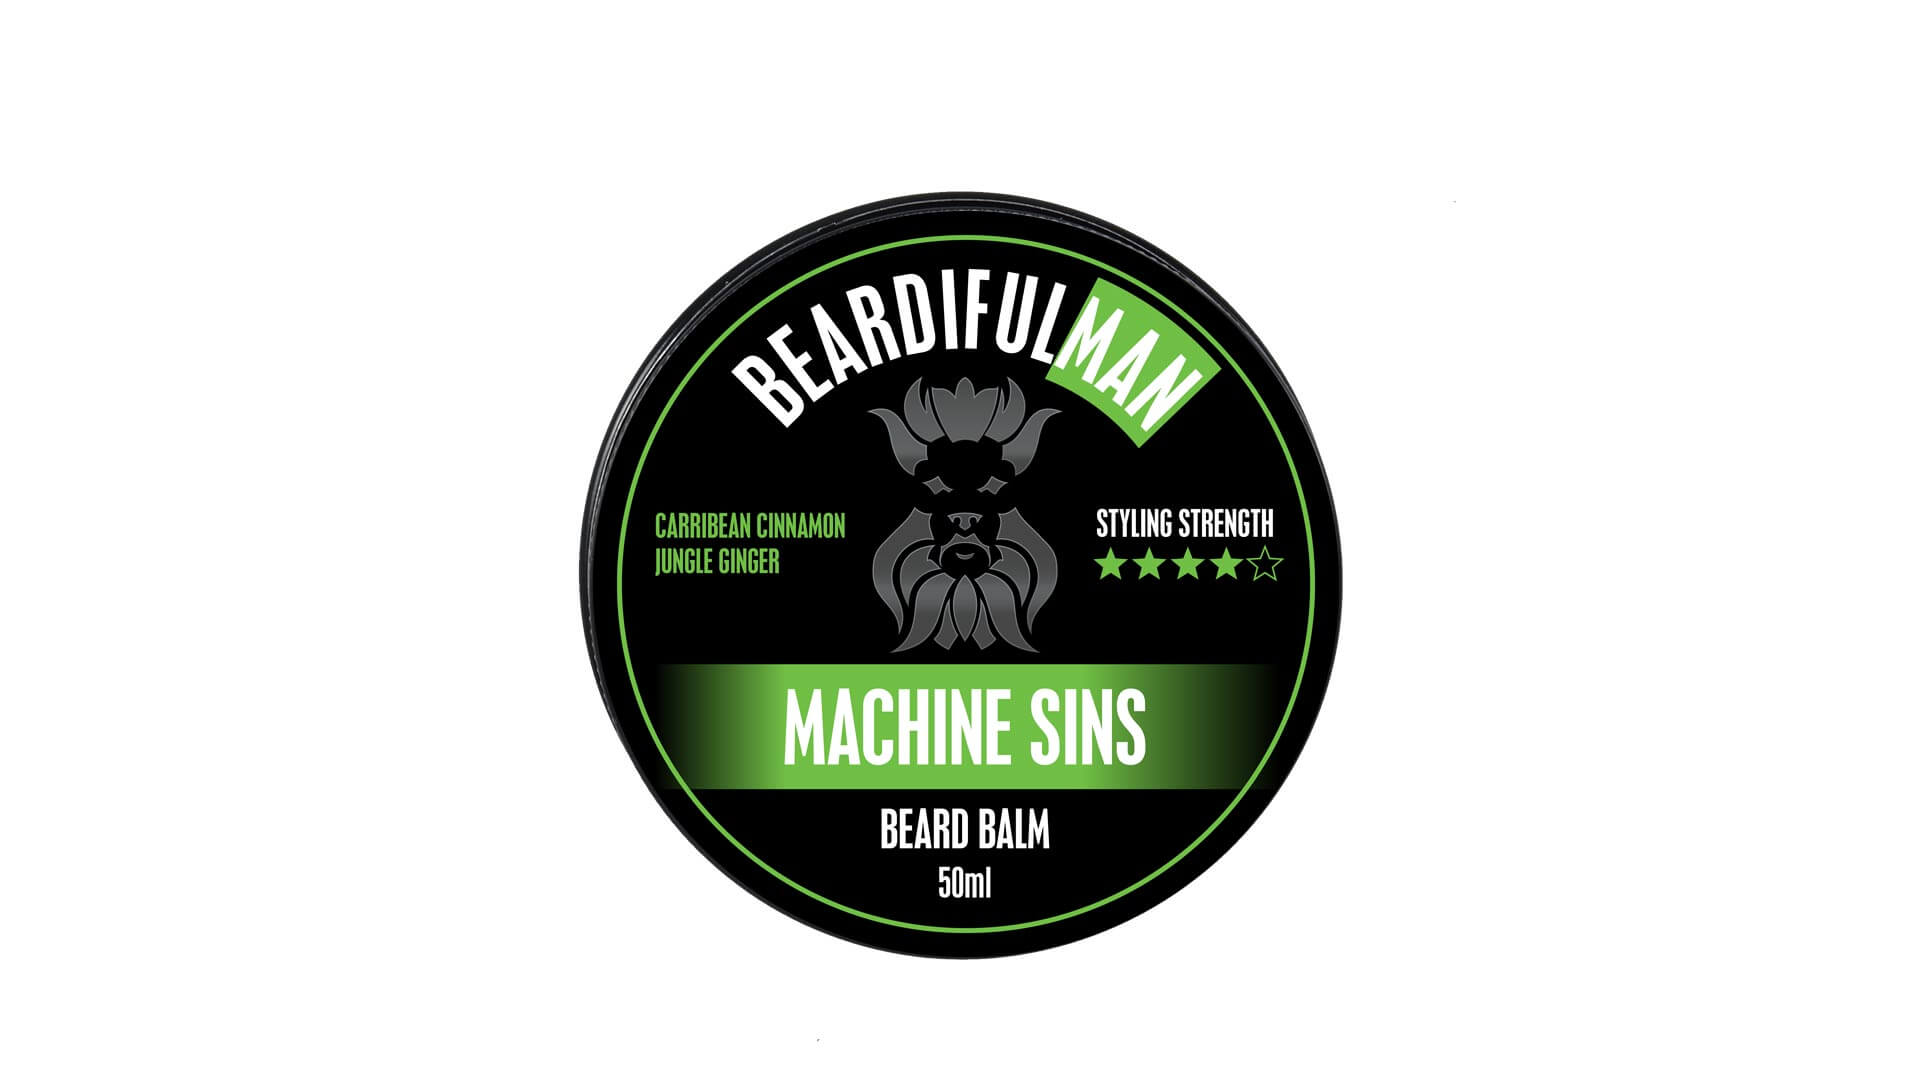 Single 50ml tin of Machine Sins premium quality beard balm from Beardifulman